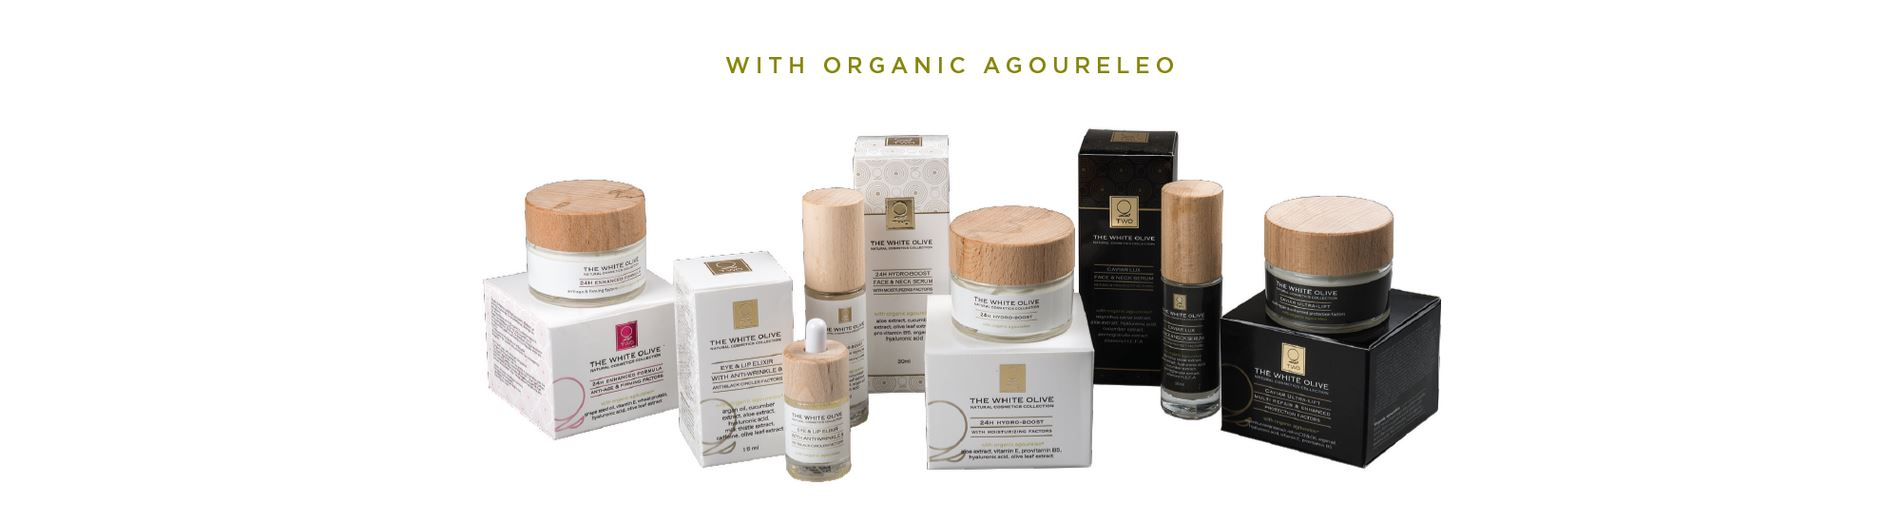 The White Olive Products